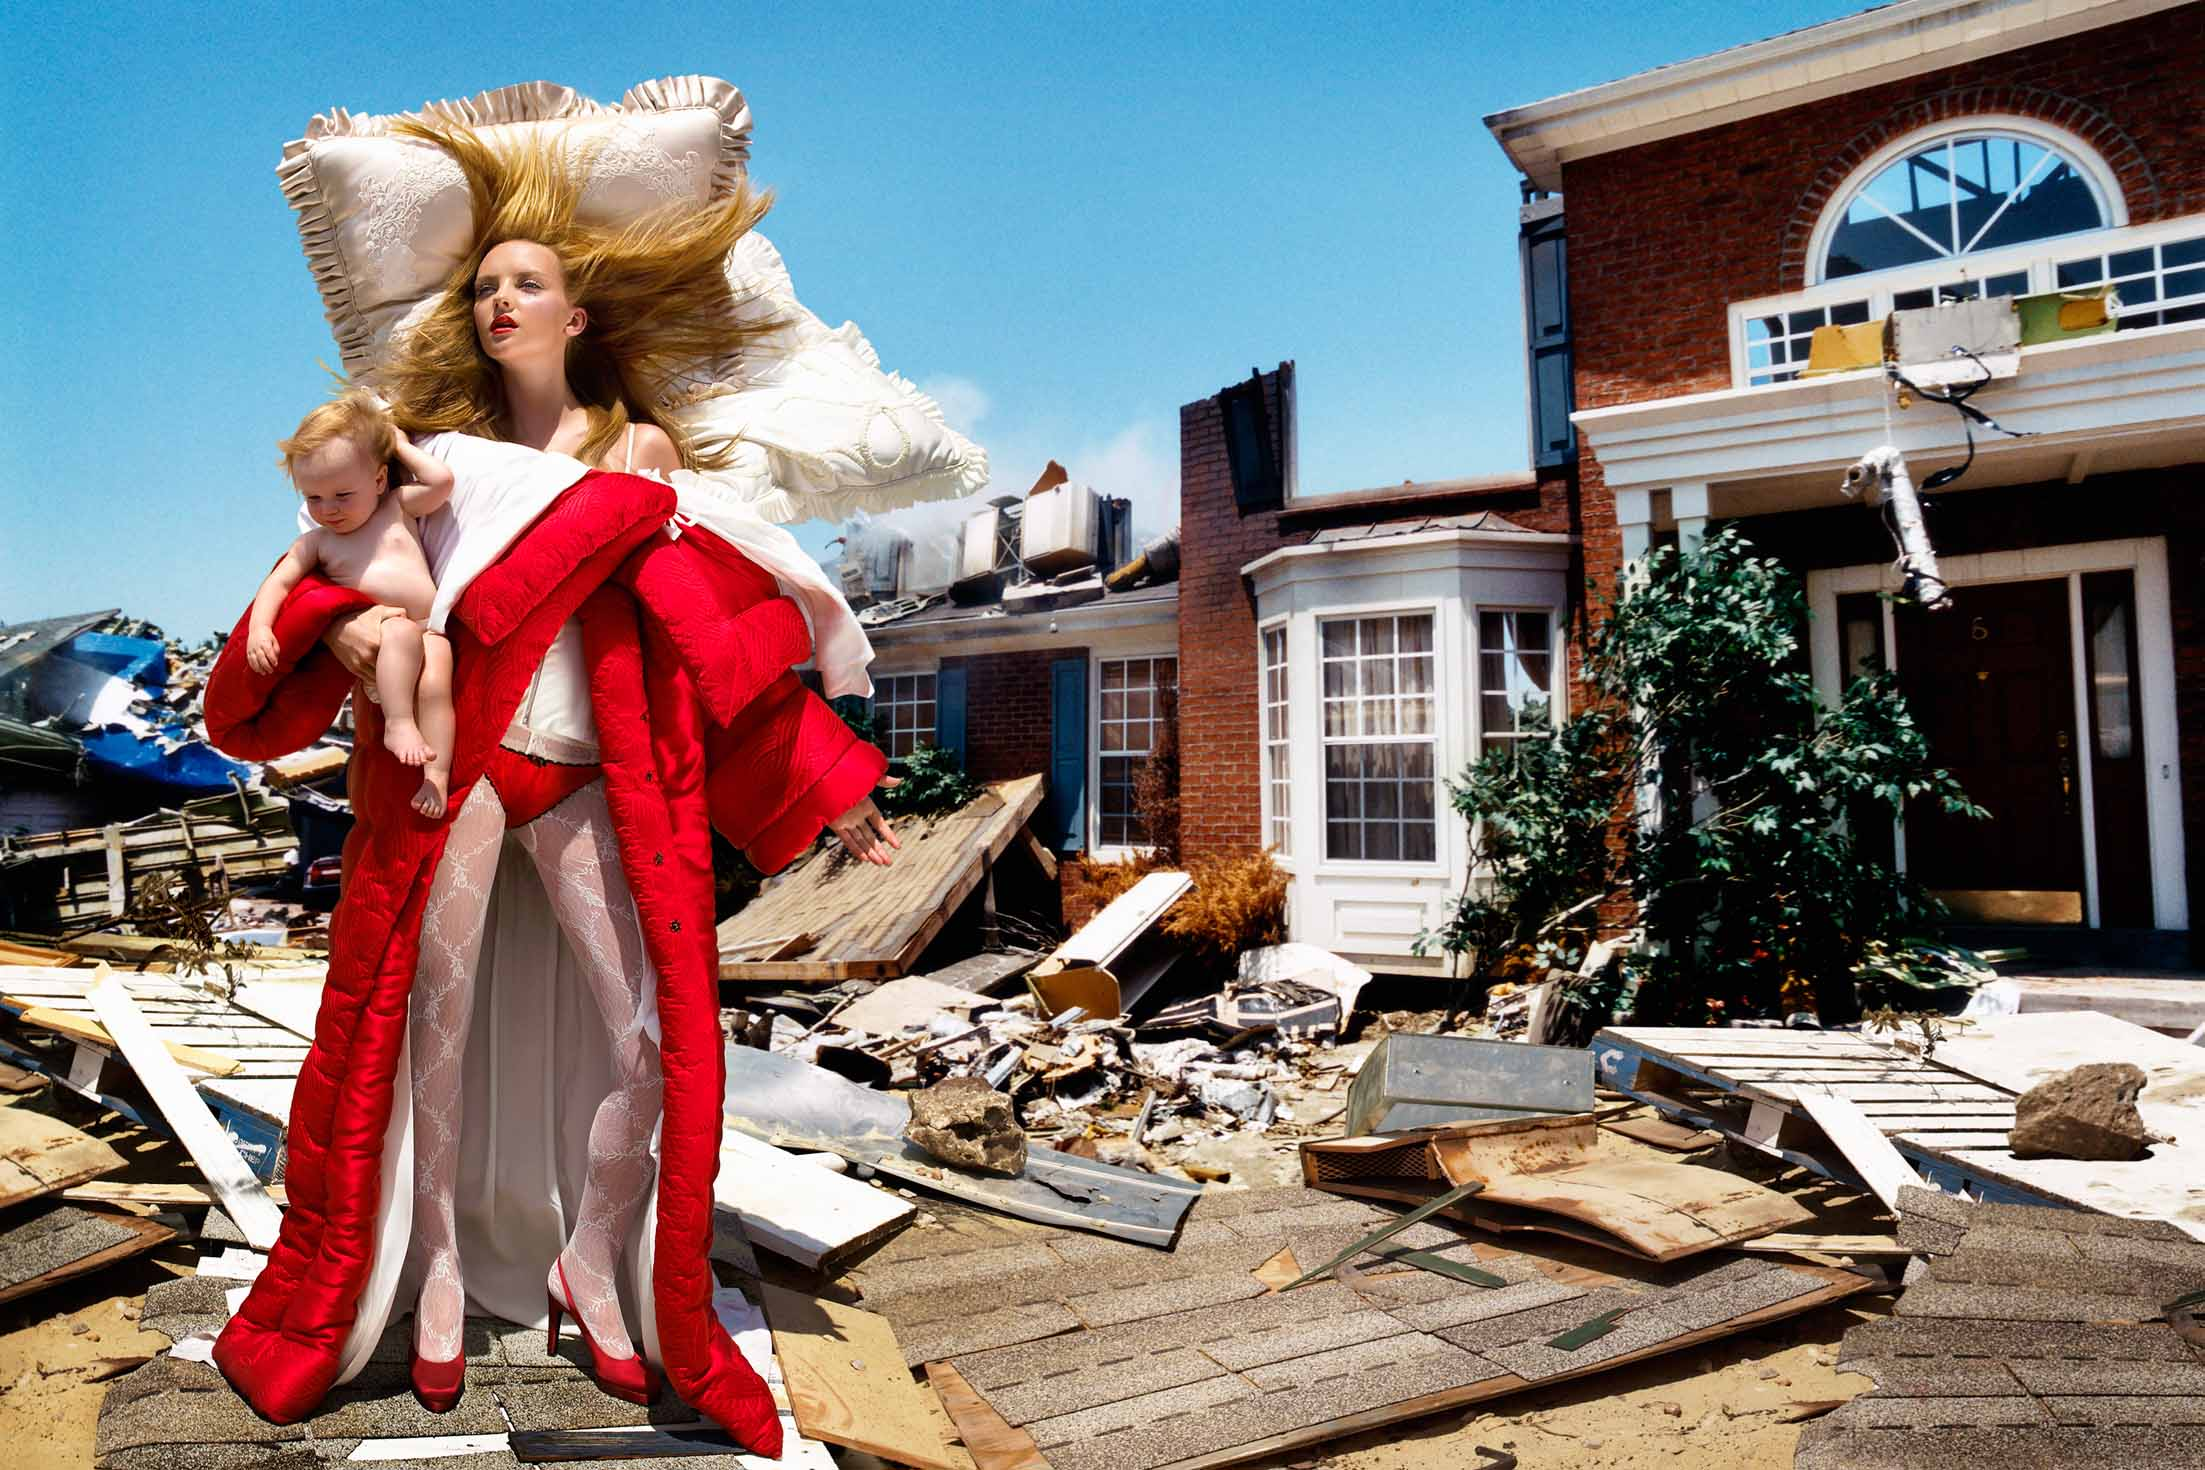 Collection prêt-à-porter automne-hiver 2005 - The House at End of the World, 2005 - Photo © David LaChapelle Studio